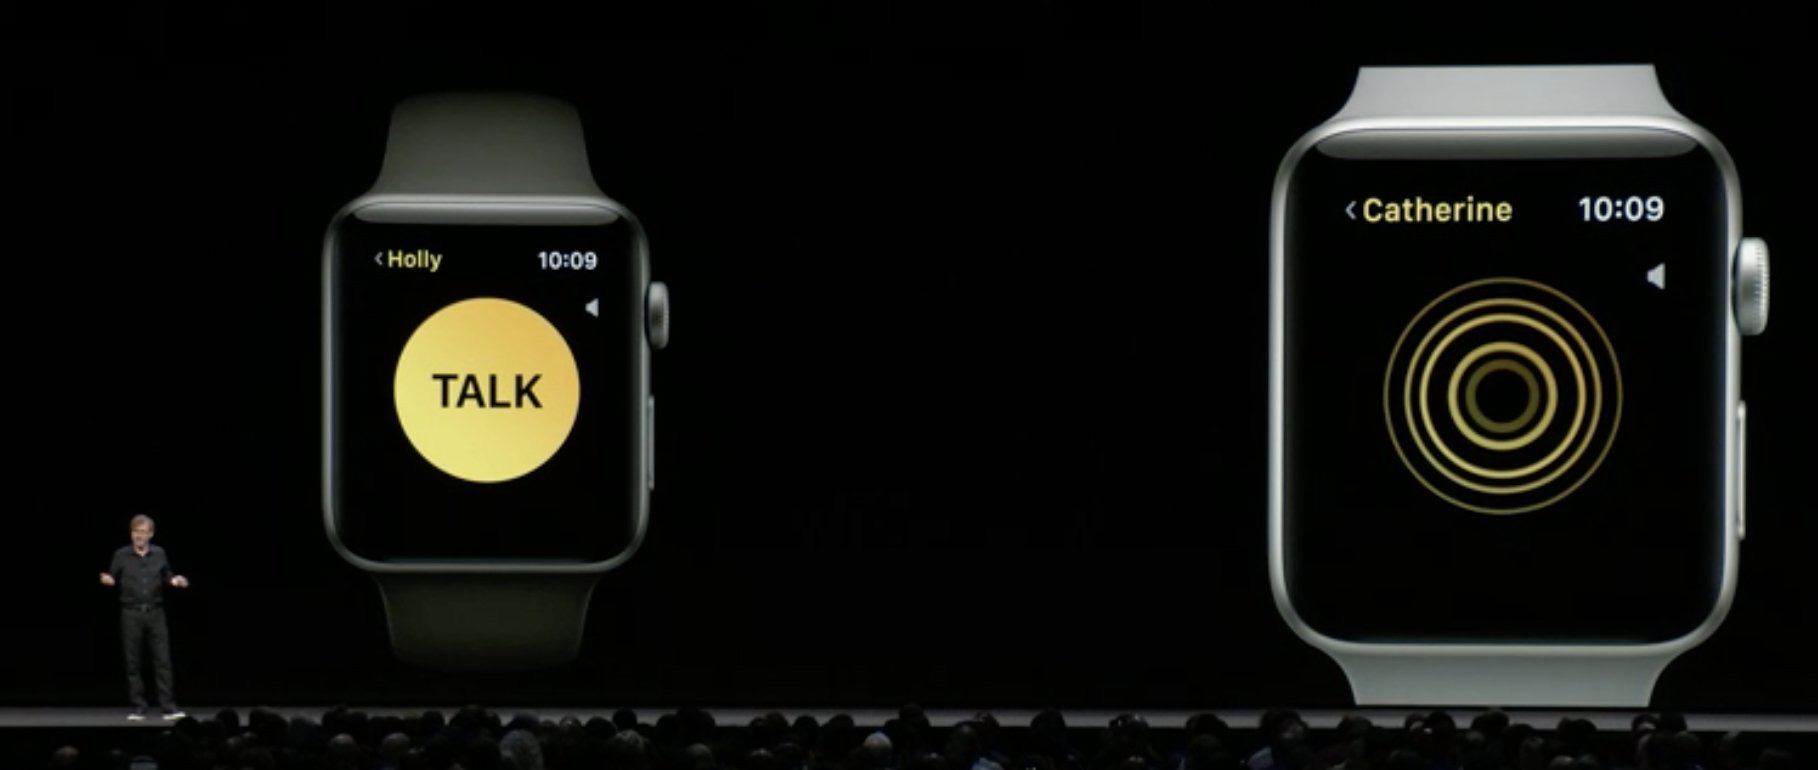 El Apple Watch utilizado como un Walkie-Talkie